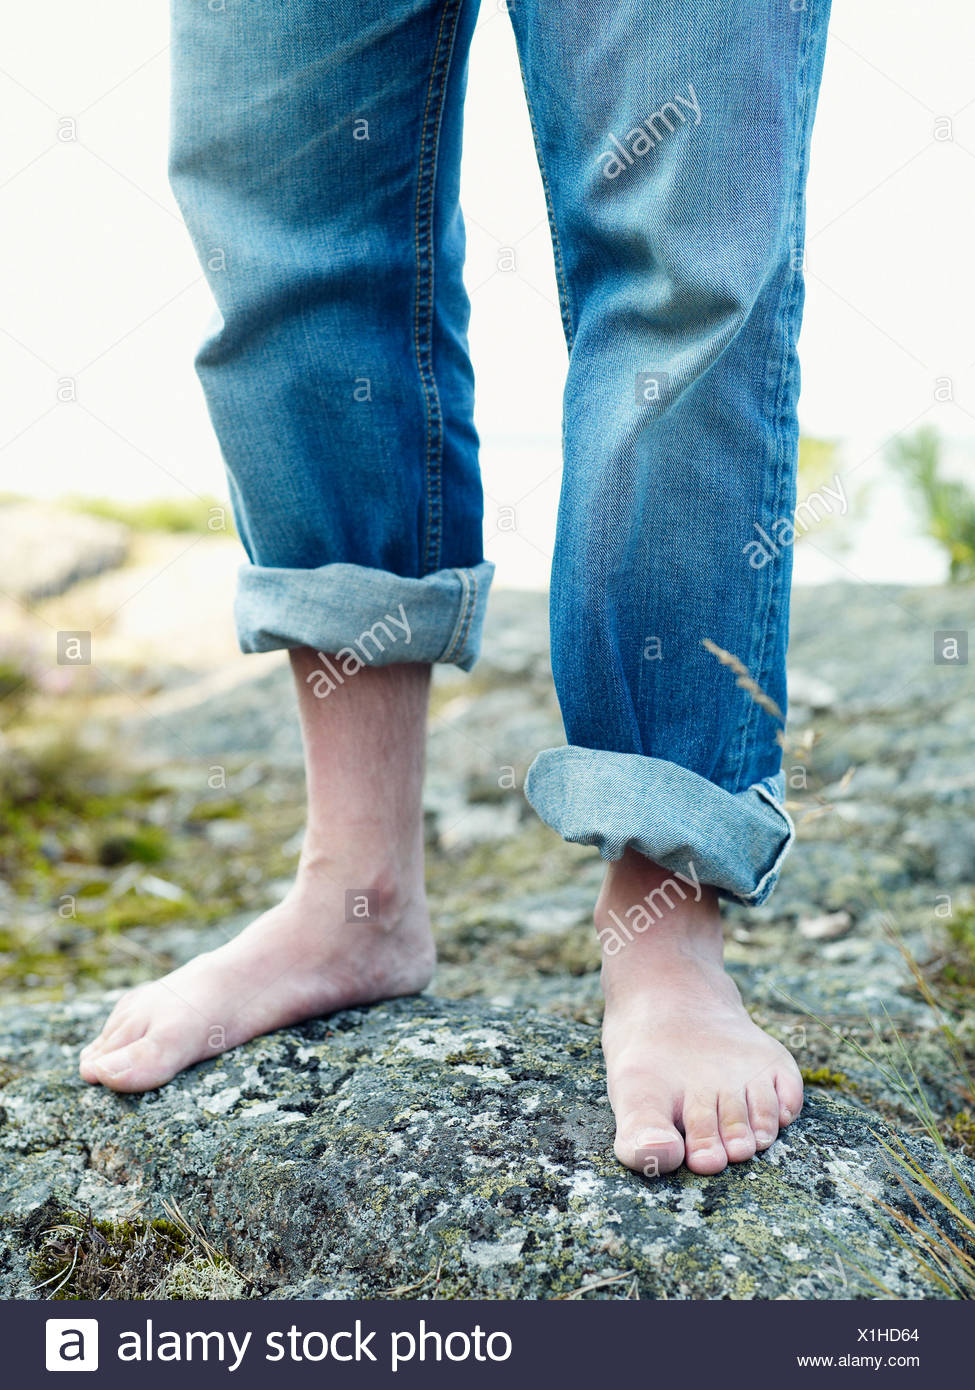 Barefooted man Sweden. - Stock Image